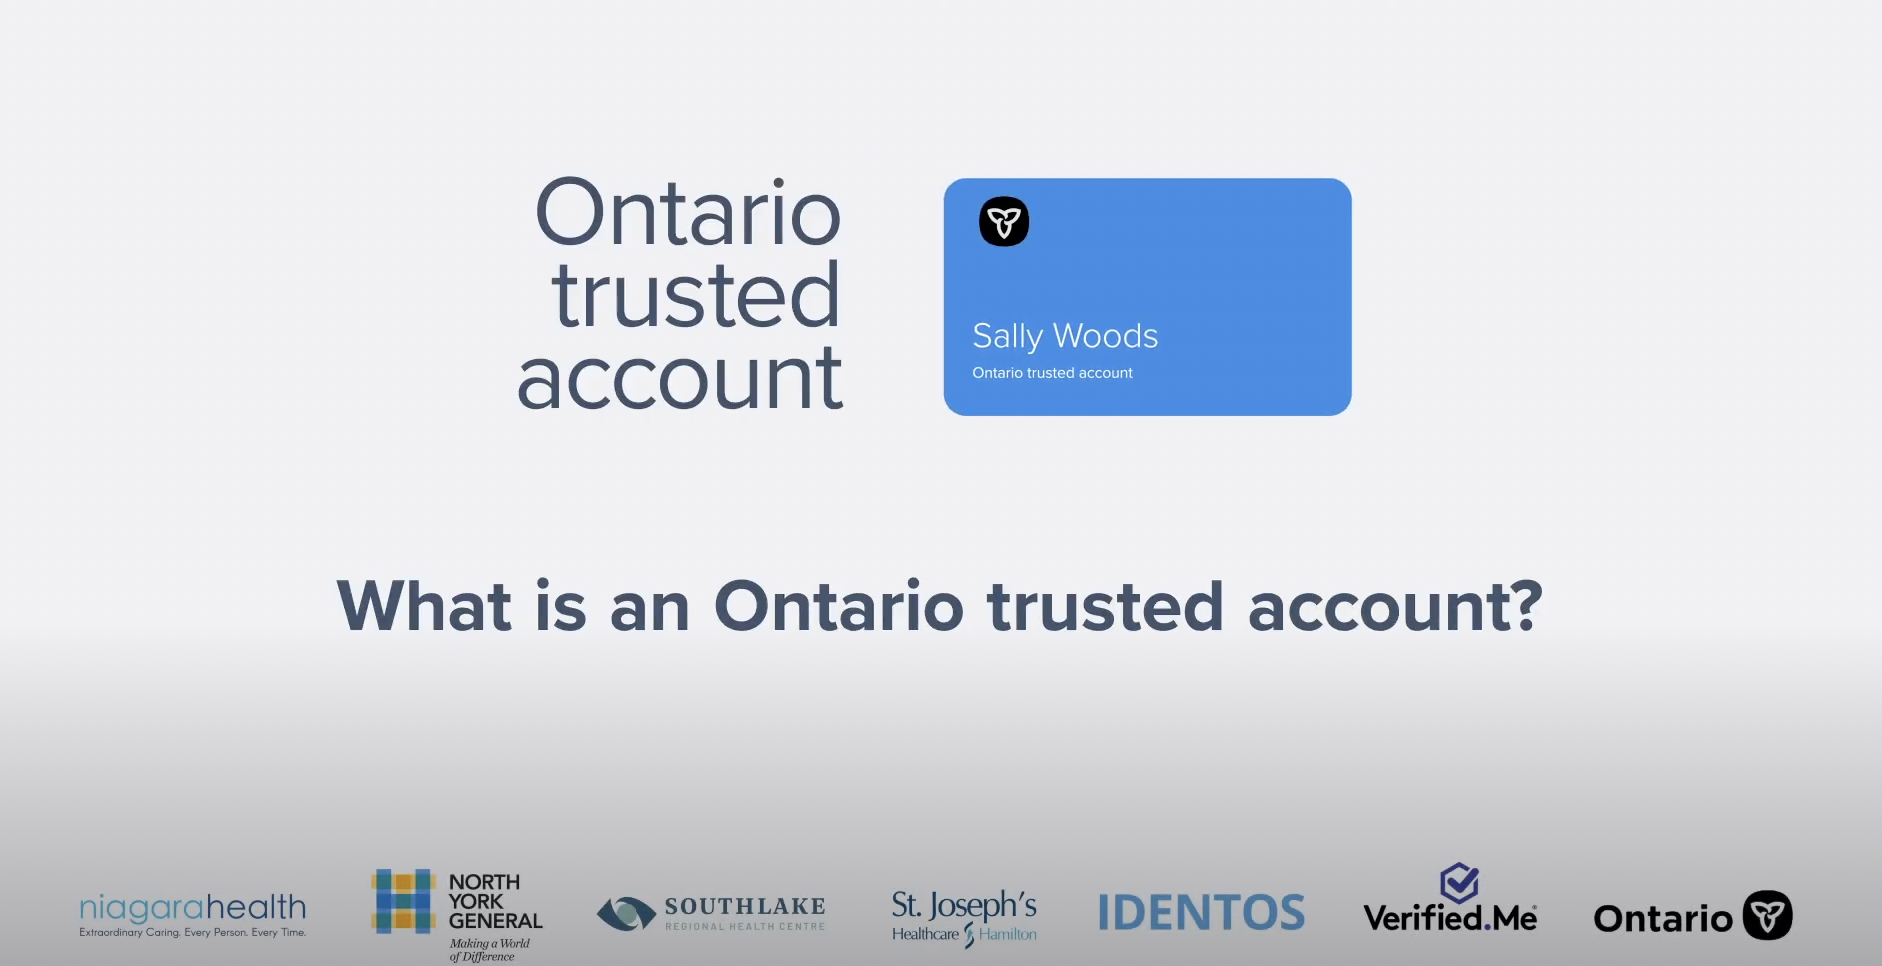 Ontario trusted account, a digital identity service